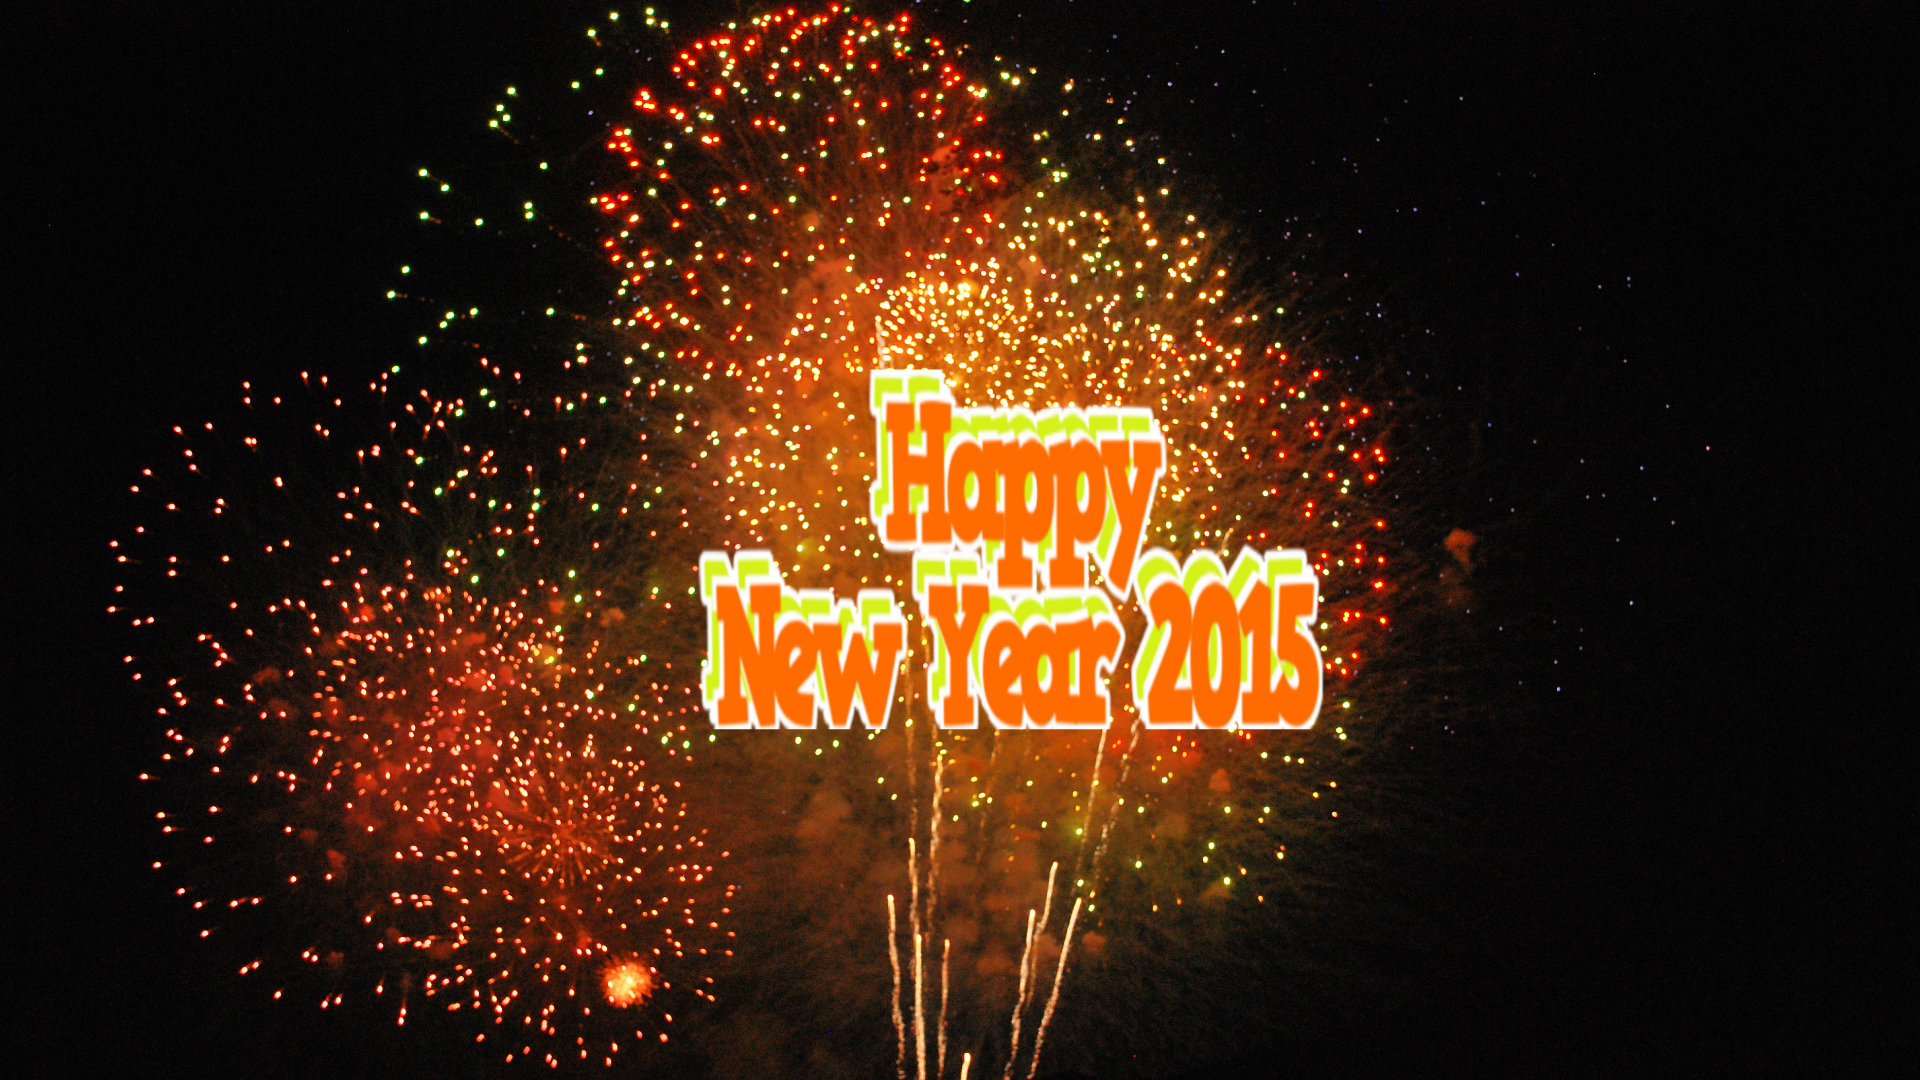 Download full hd New Year 2015 computer background ID:156216 for free